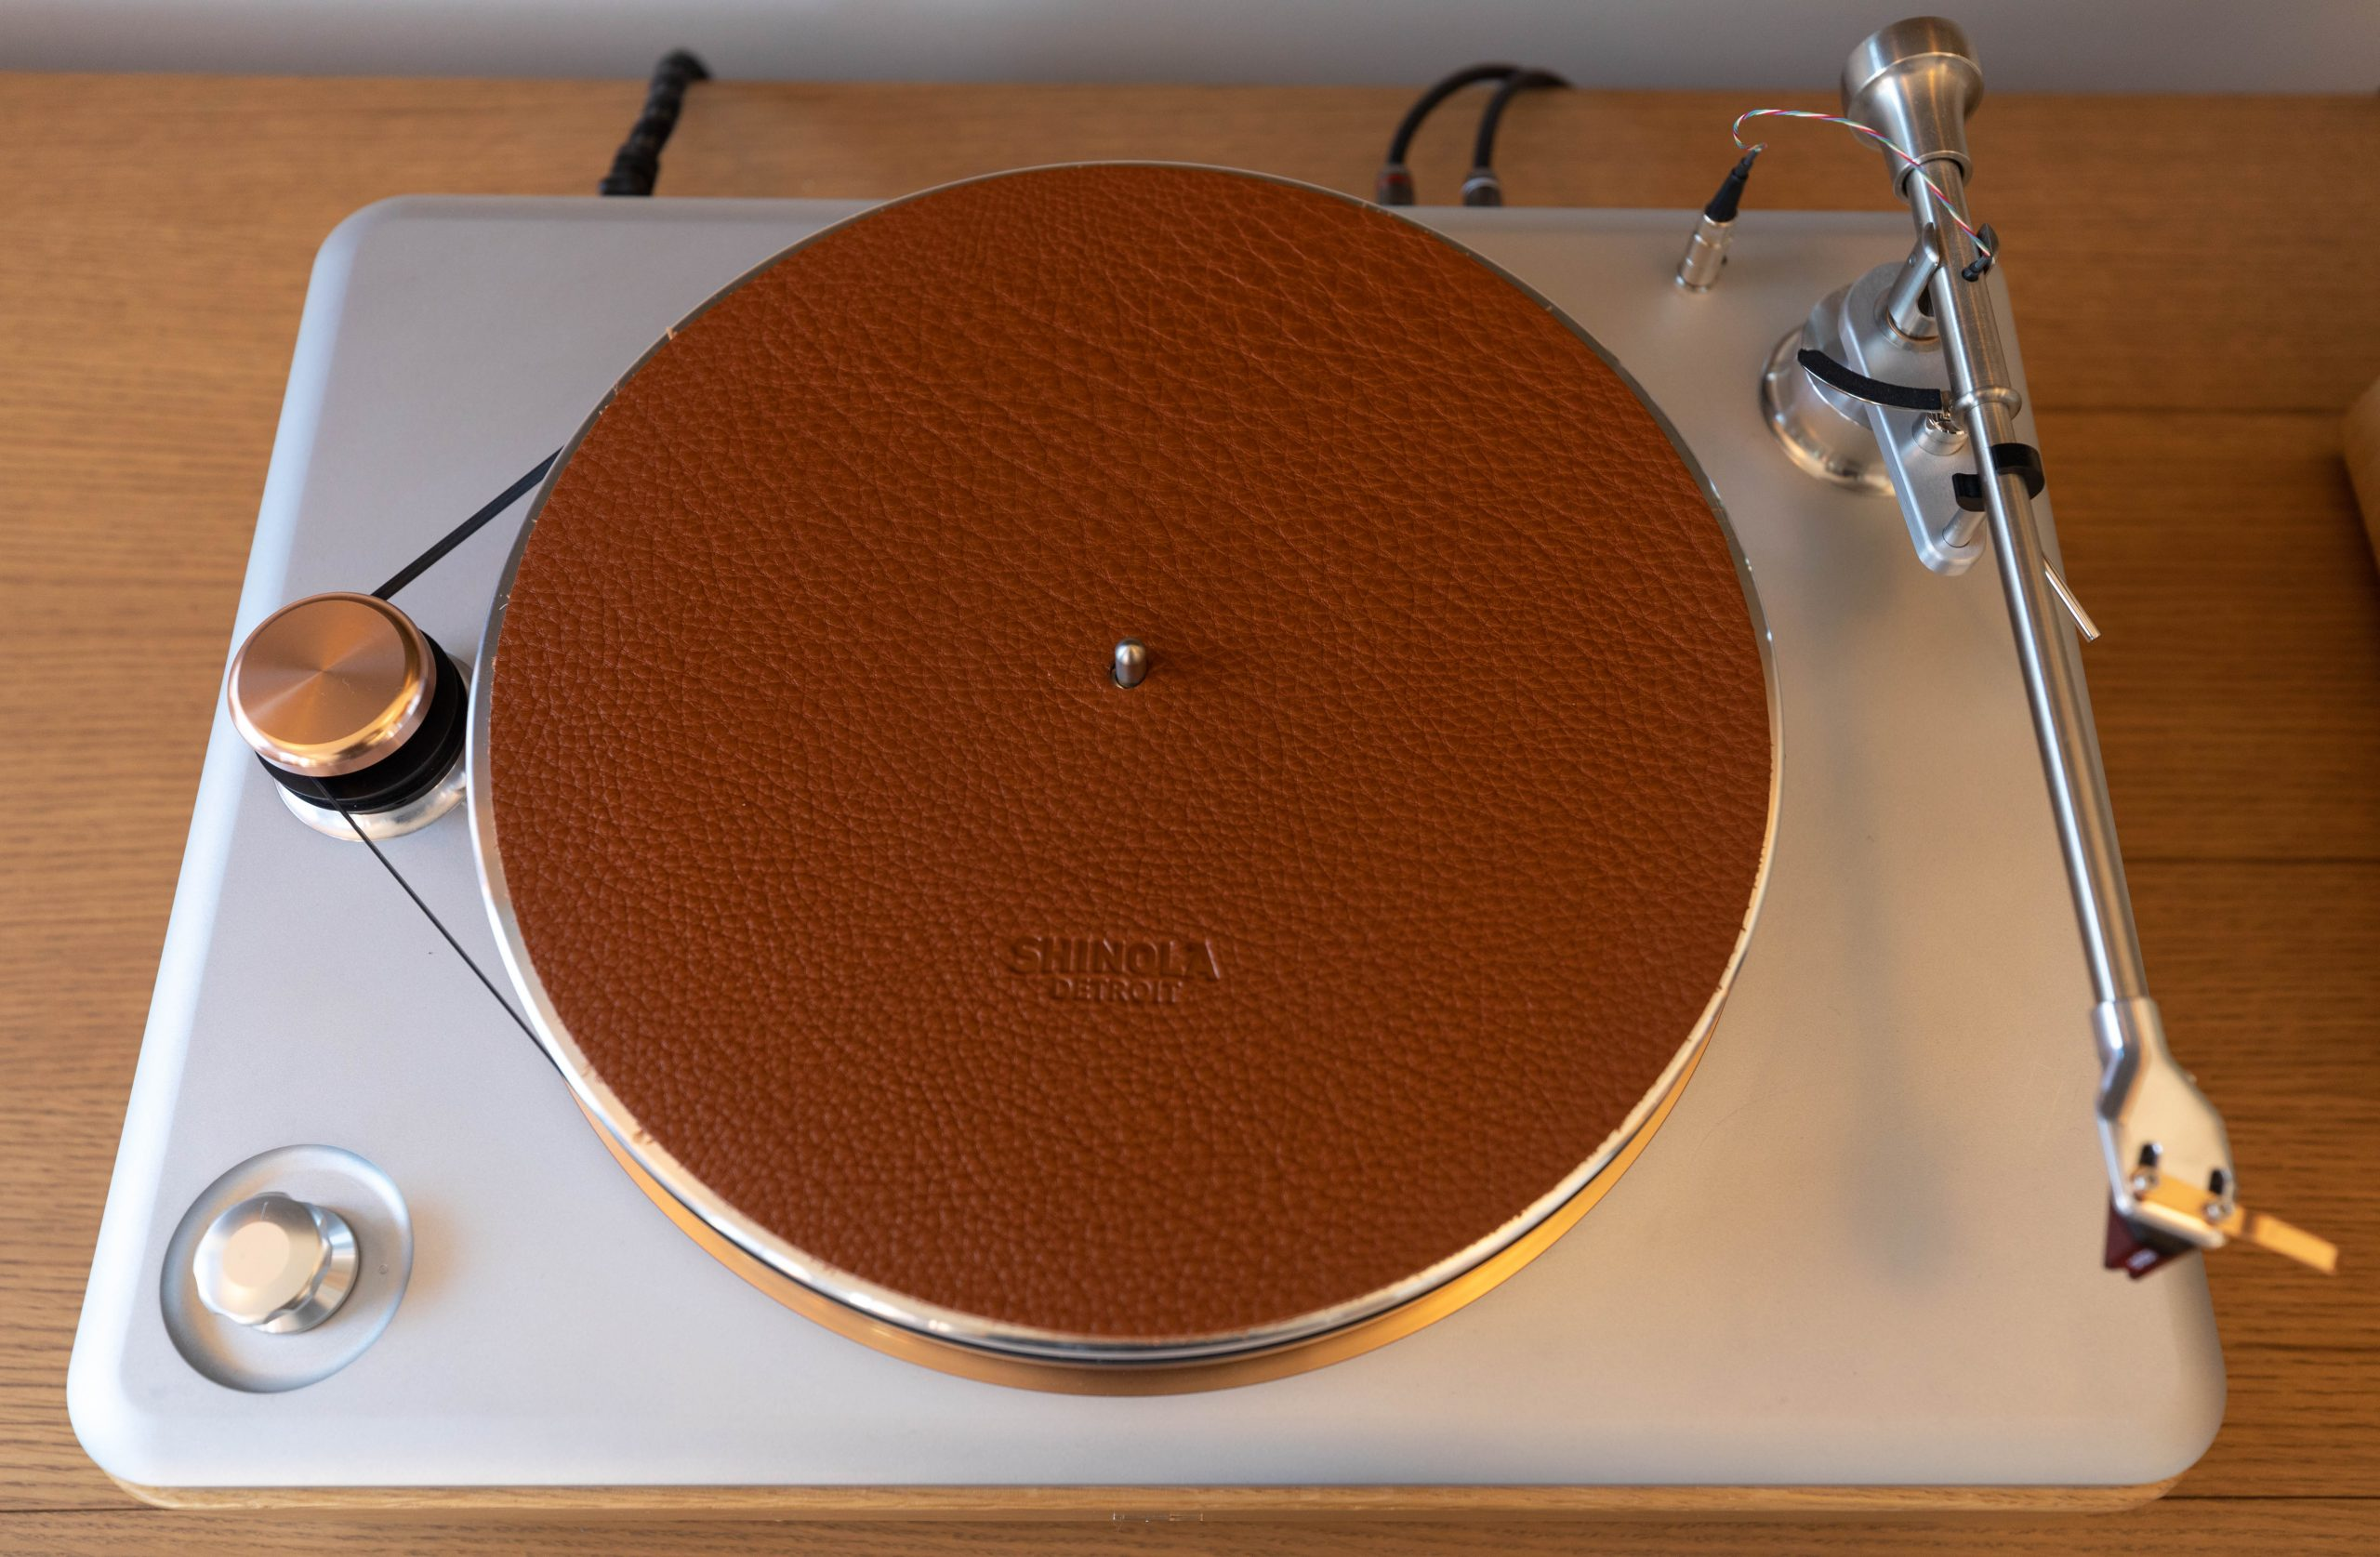 Shinola Hotel Record Player in the Penthouse Suite